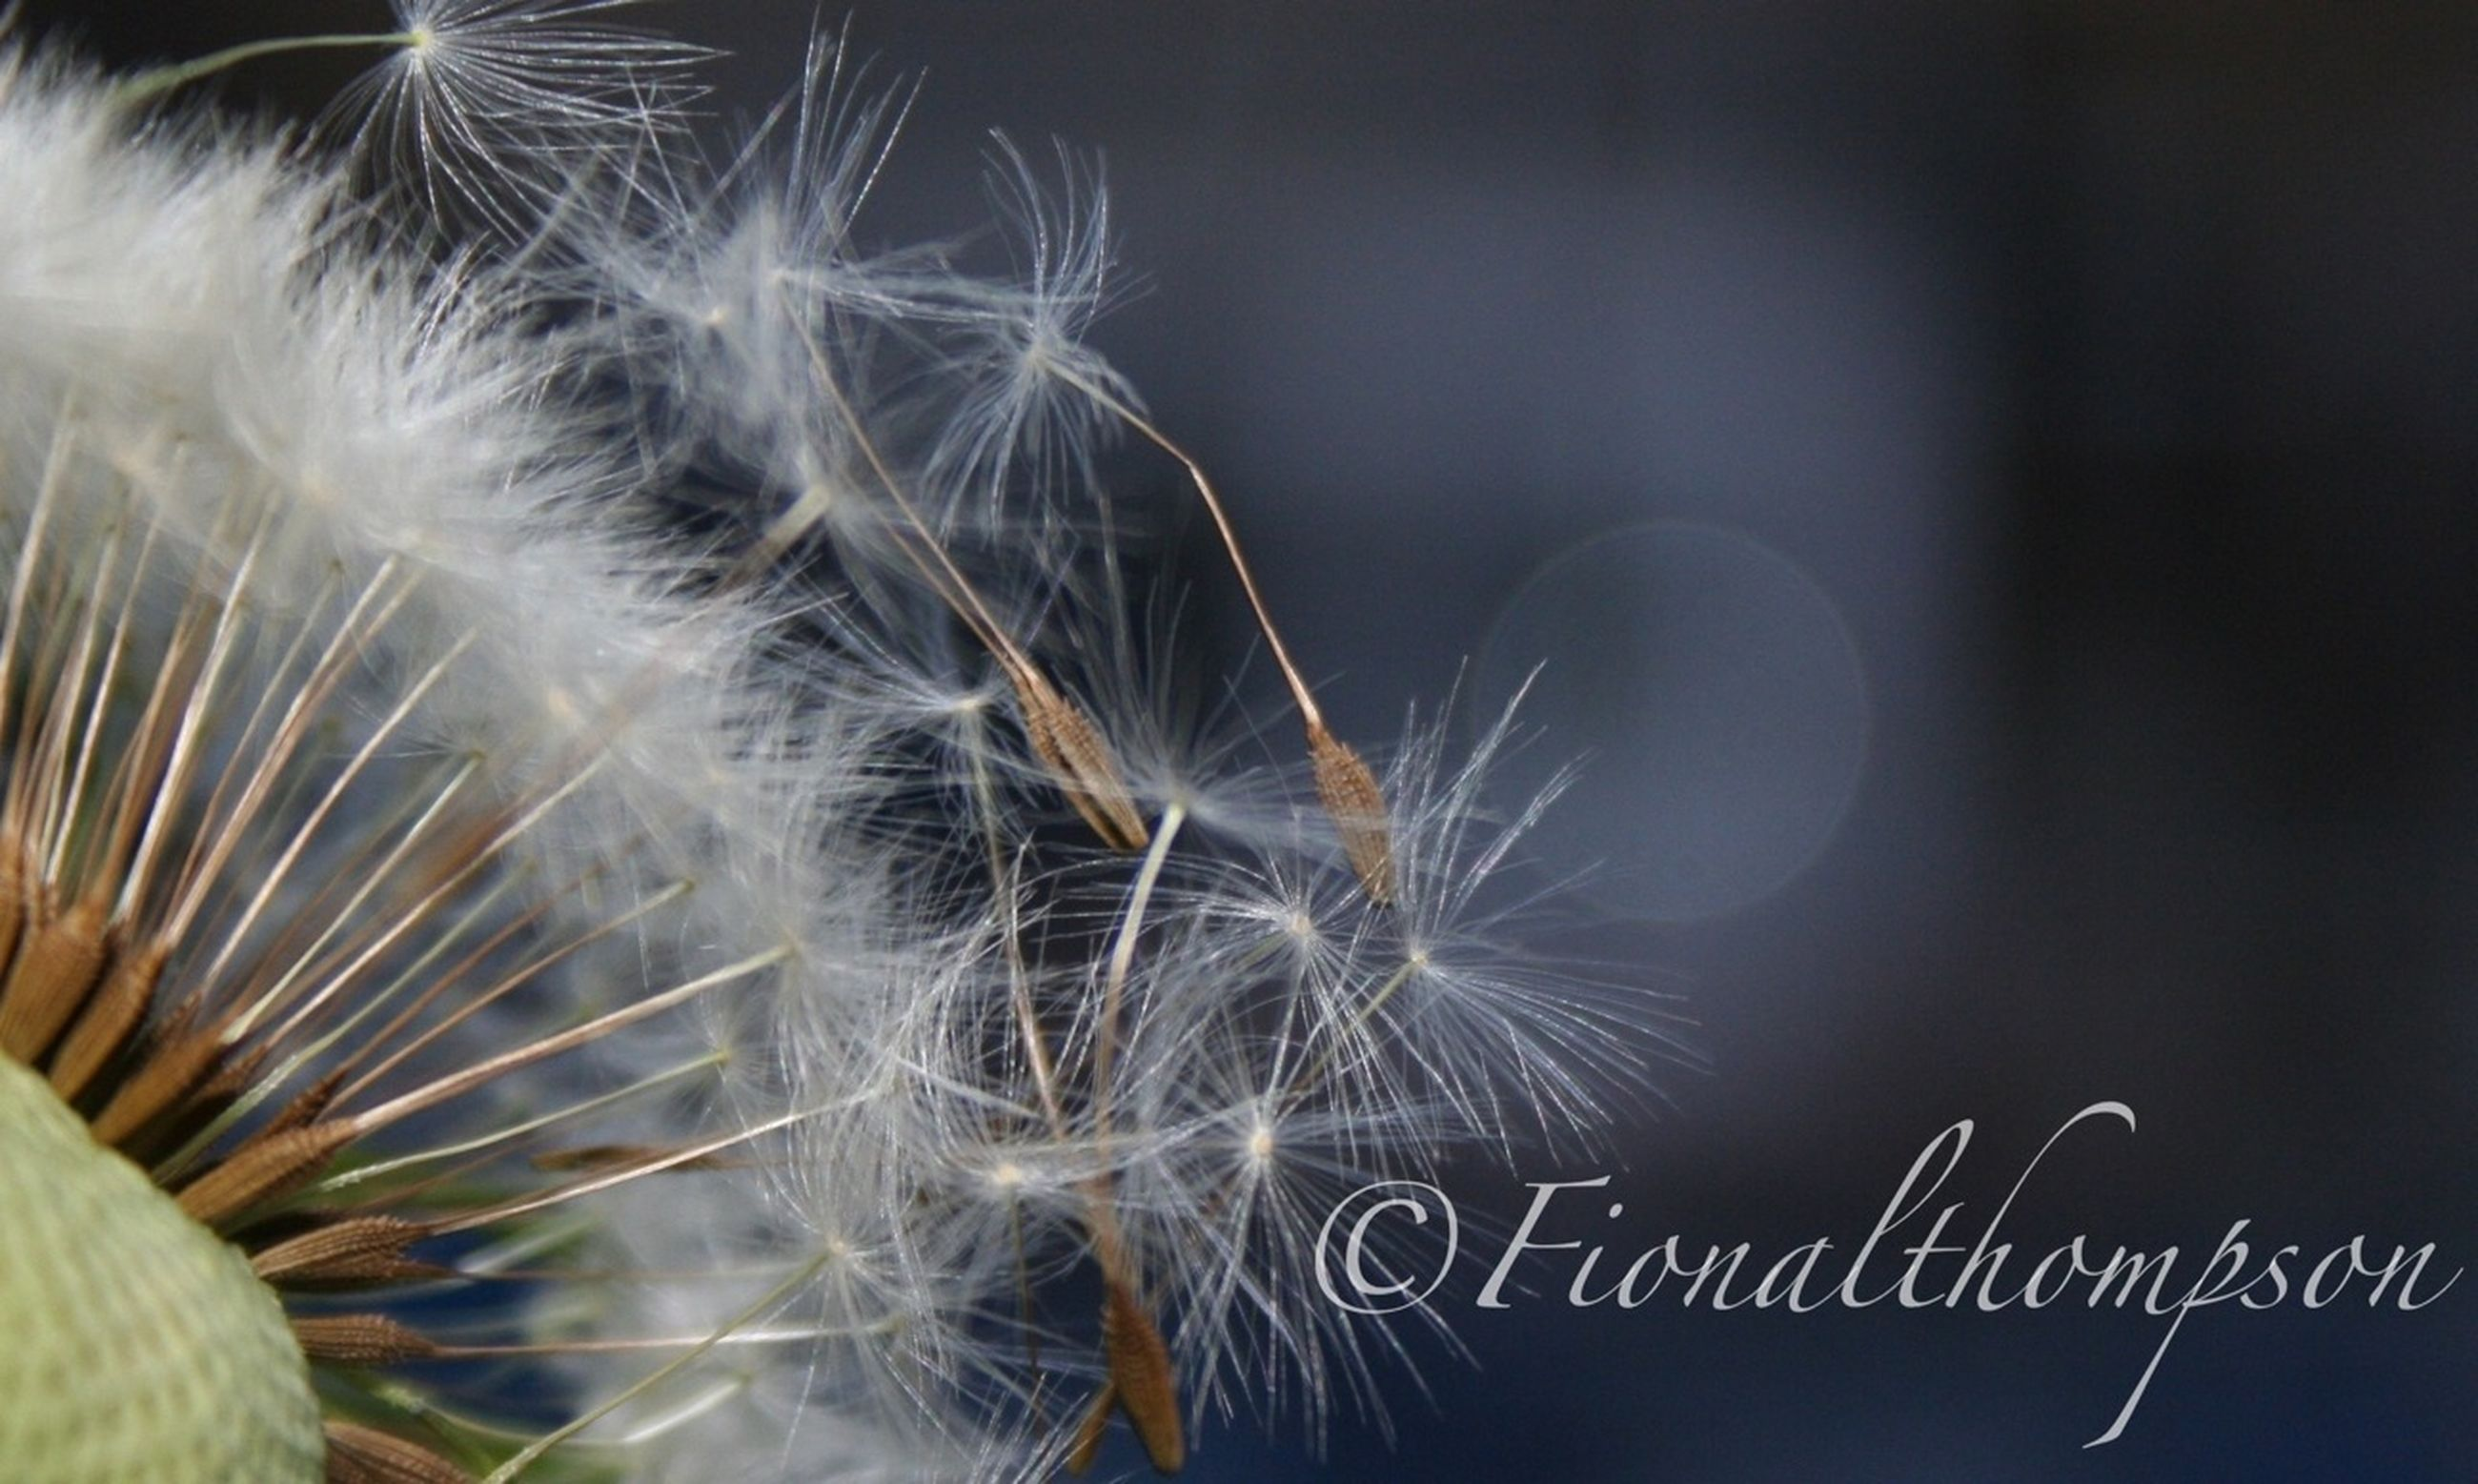 close-up, fragility, freshness, indoors, focus on foreground, spiked, flower, no people, growth, pattern, nature, plant, sharp, selective focus, cactus, thorn, natural pattern, dandelion, softness, flower head